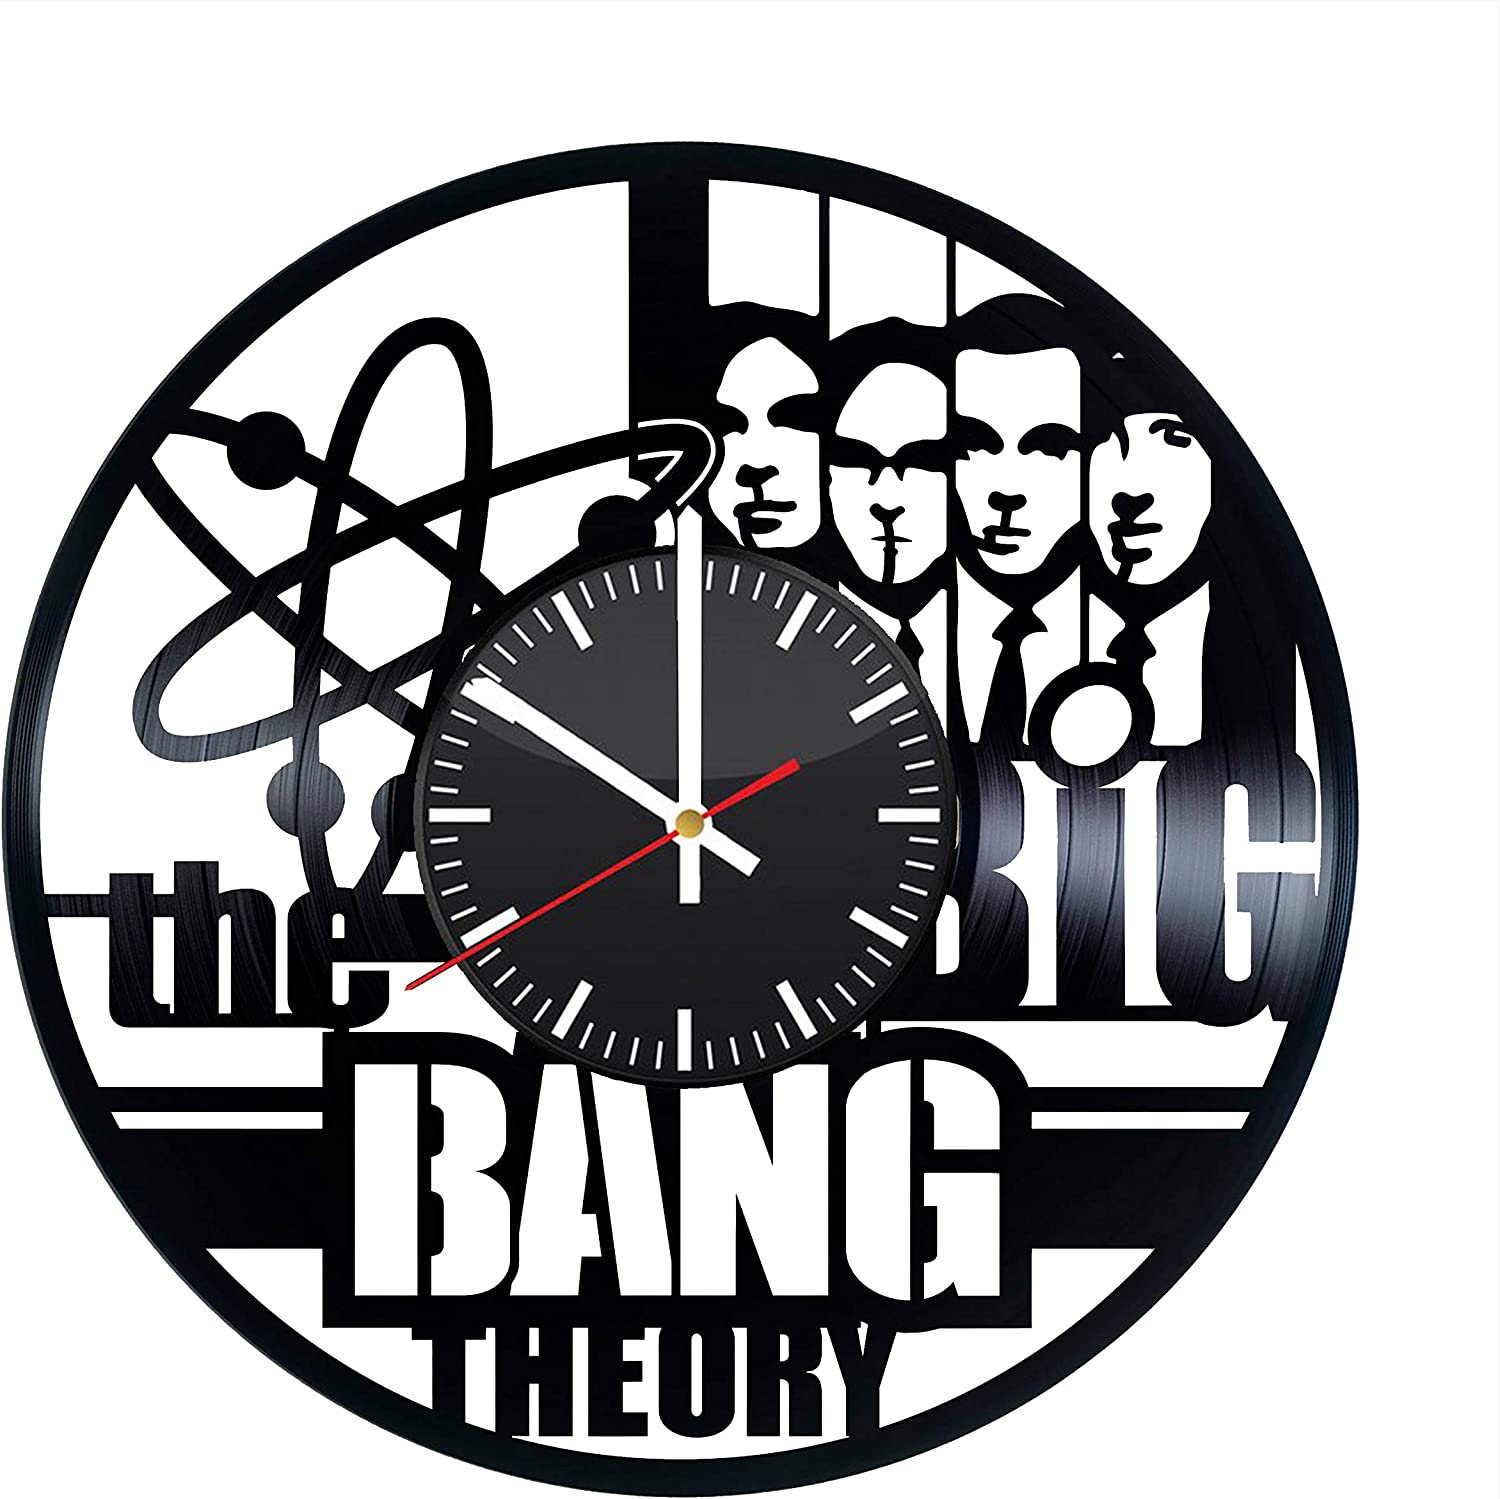 The Big Bang Theory Vinyl Record Wall Clock, Original Home Room Kitchen Vintage Modern Decor, Handmade Gift Idea for Any Occasion